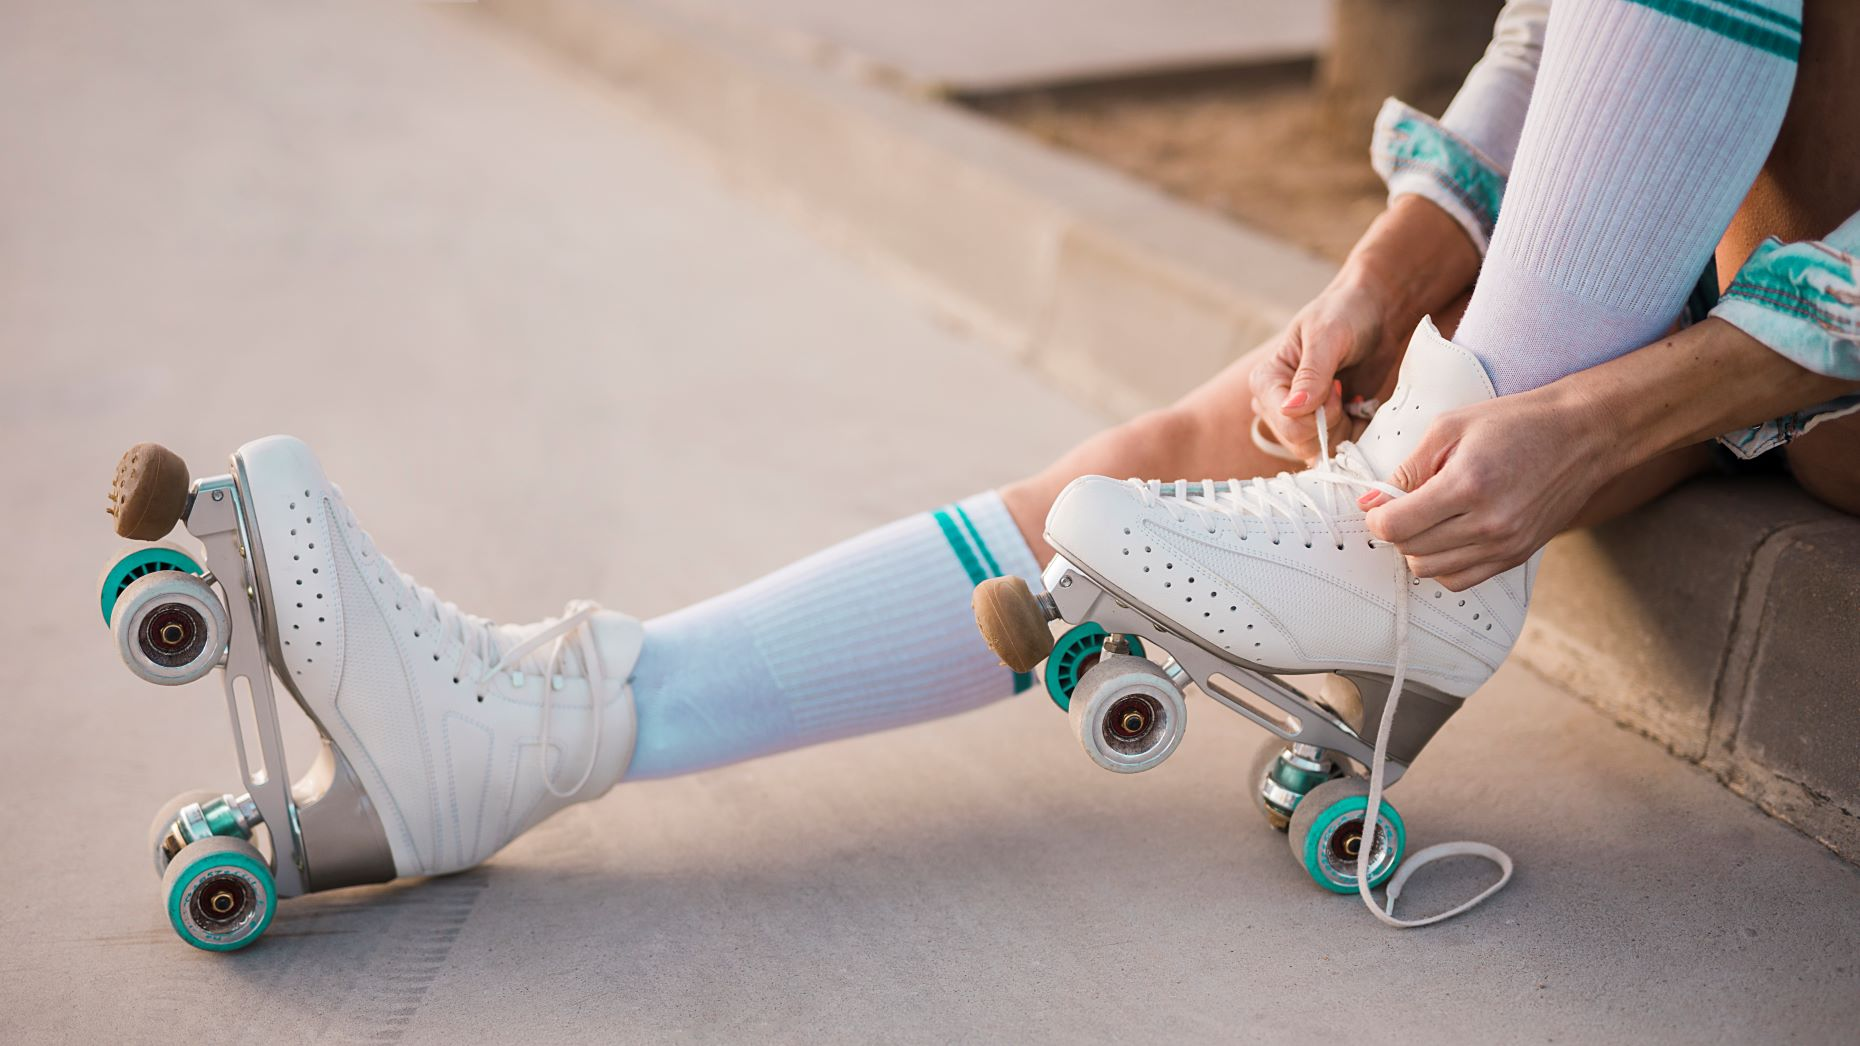 Person lacing up roller skates